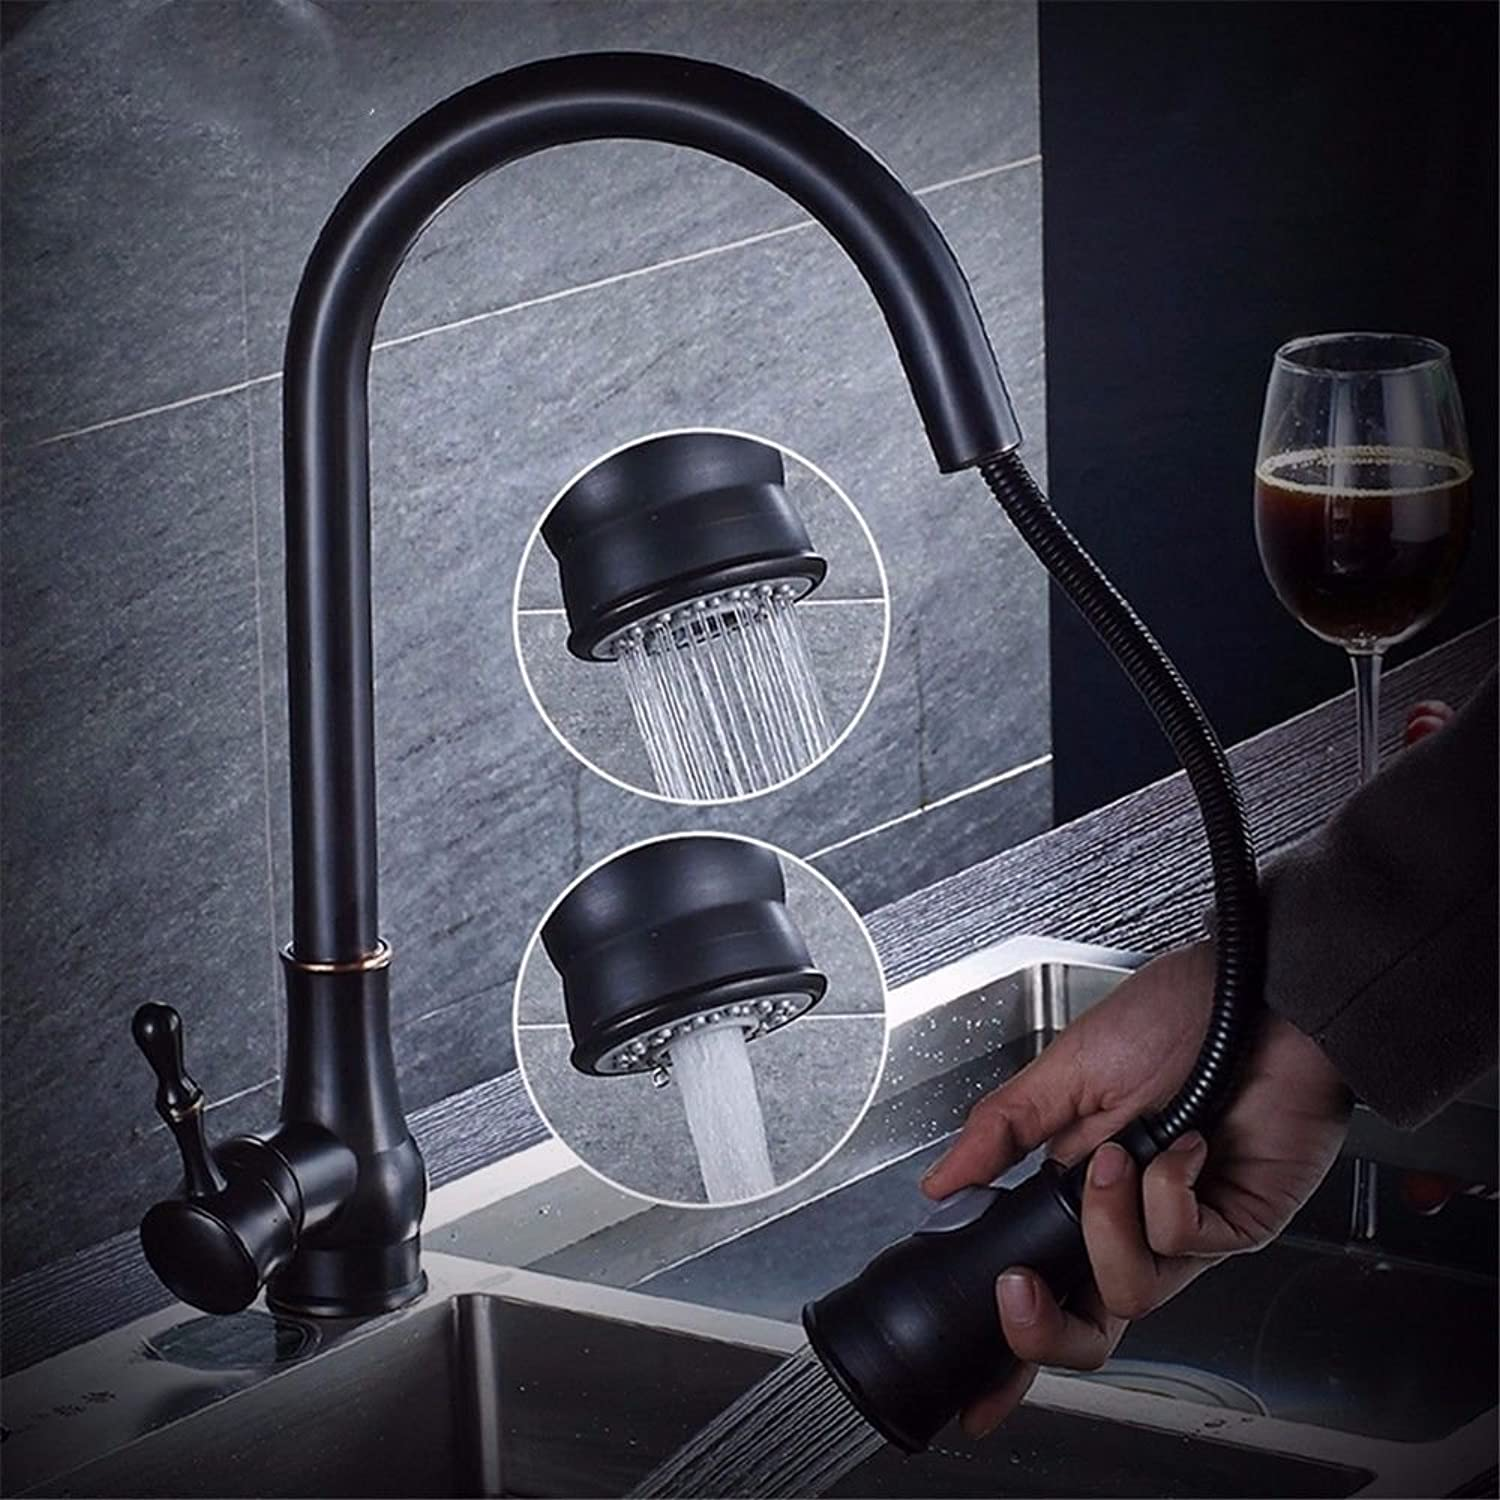 AQMMi Basin Taps Bathroom Sink Faucet Pull-Out Hot and Cold Water Extendable Brass Swivel Black Bathroom Sink Faucet Basin Mixer Tap